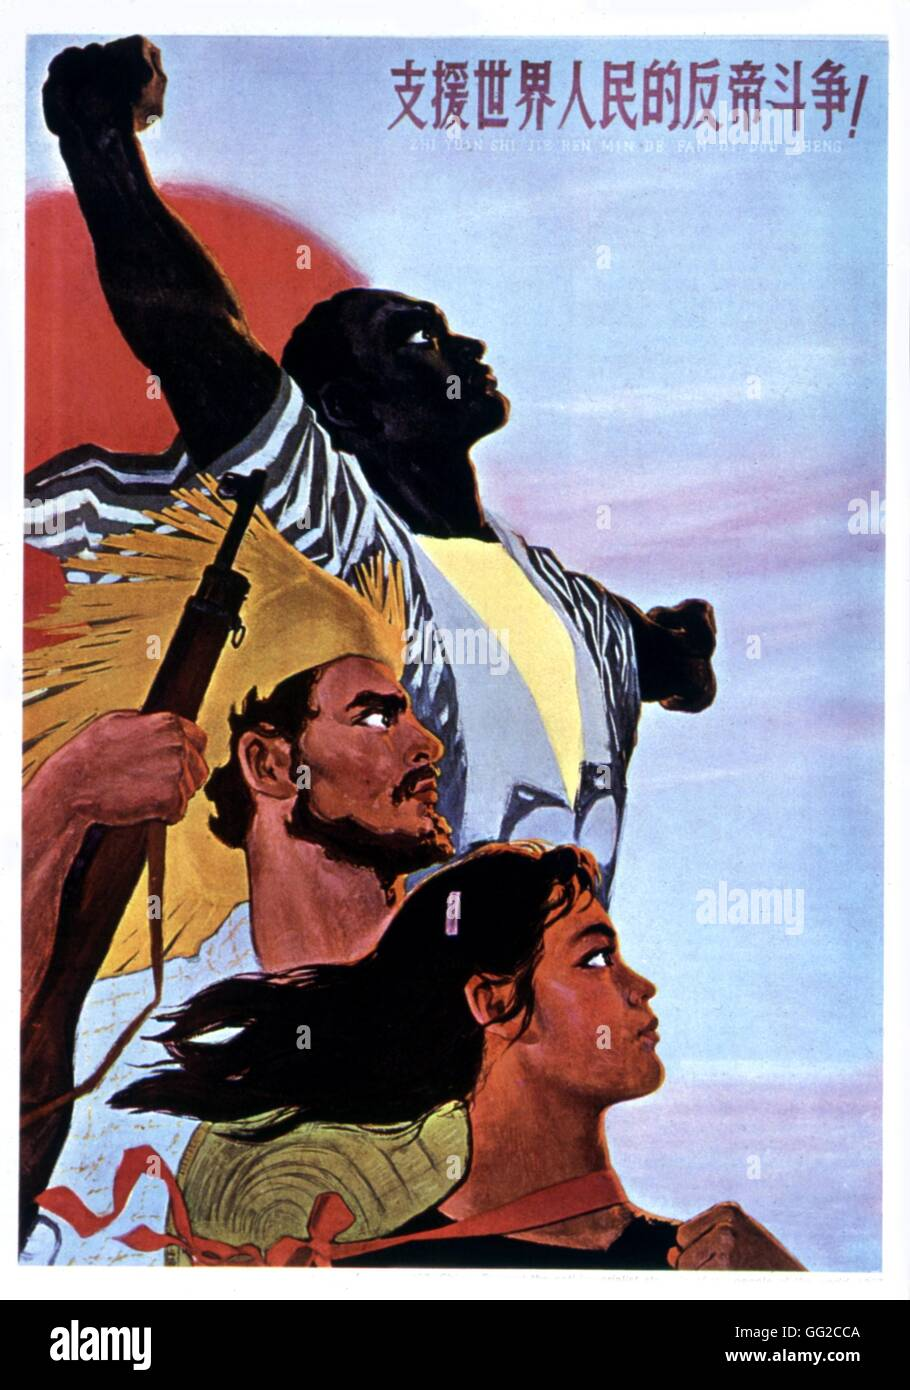 Propaganda poster, during the Chinese cultural revolution, for the anti-imperialist struggle 1967 China - Stock Image